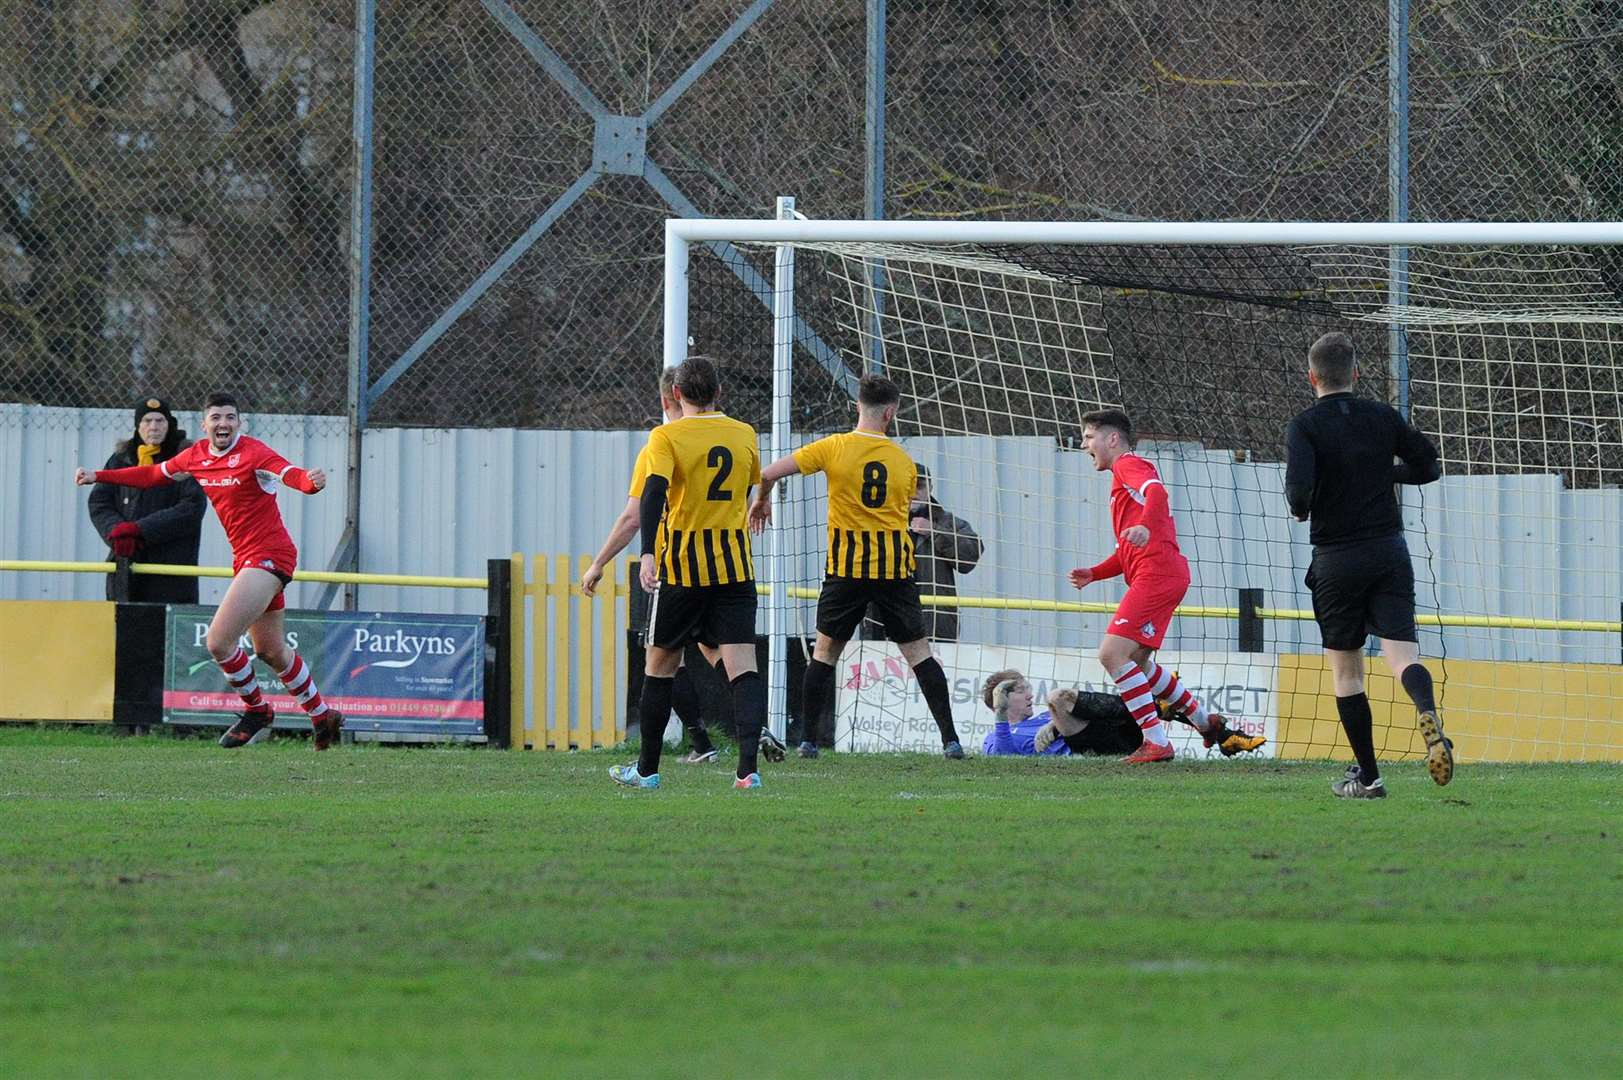 FOOTBALL - Stowmarket Town FC v Ely City..Pictured: Ely score their first goal....PICTURE: Mecha Morton. (6191296)